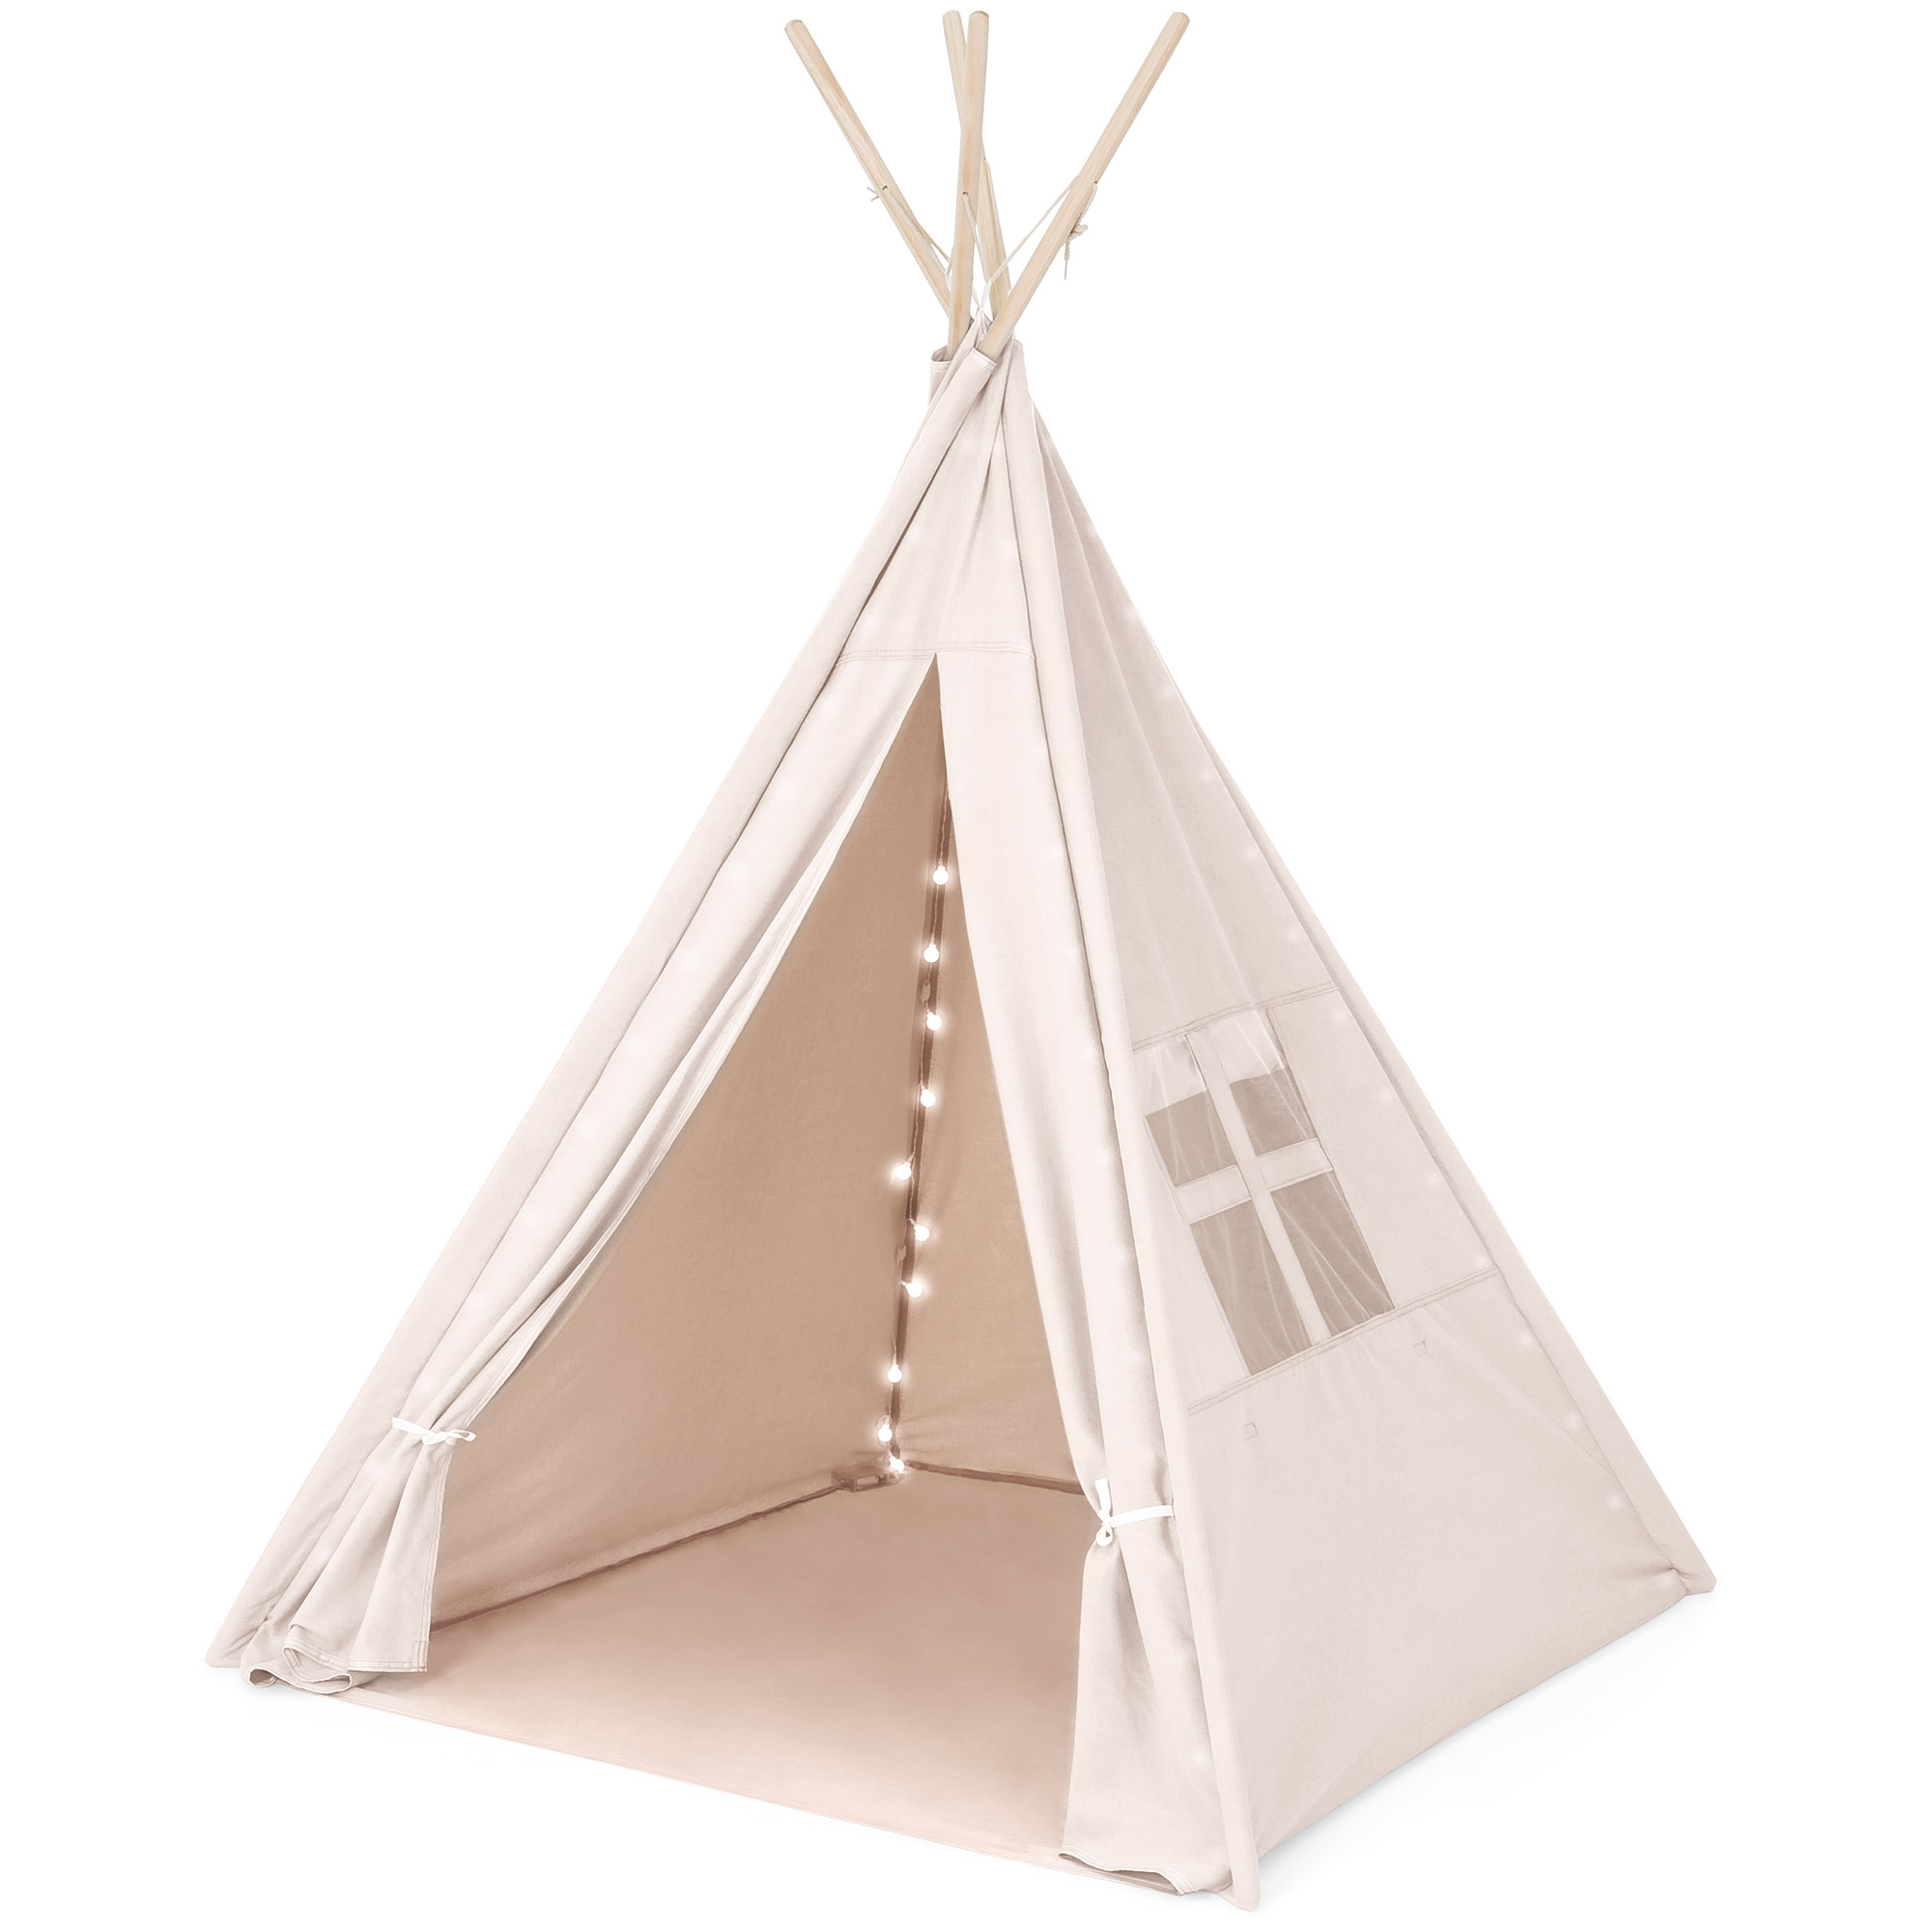 Best Choice Products 6ft Kids Cotton Canvas Indian Teepee Playhouse Sleeping Dome Play Tent w  Lights,... by Best Choice Products